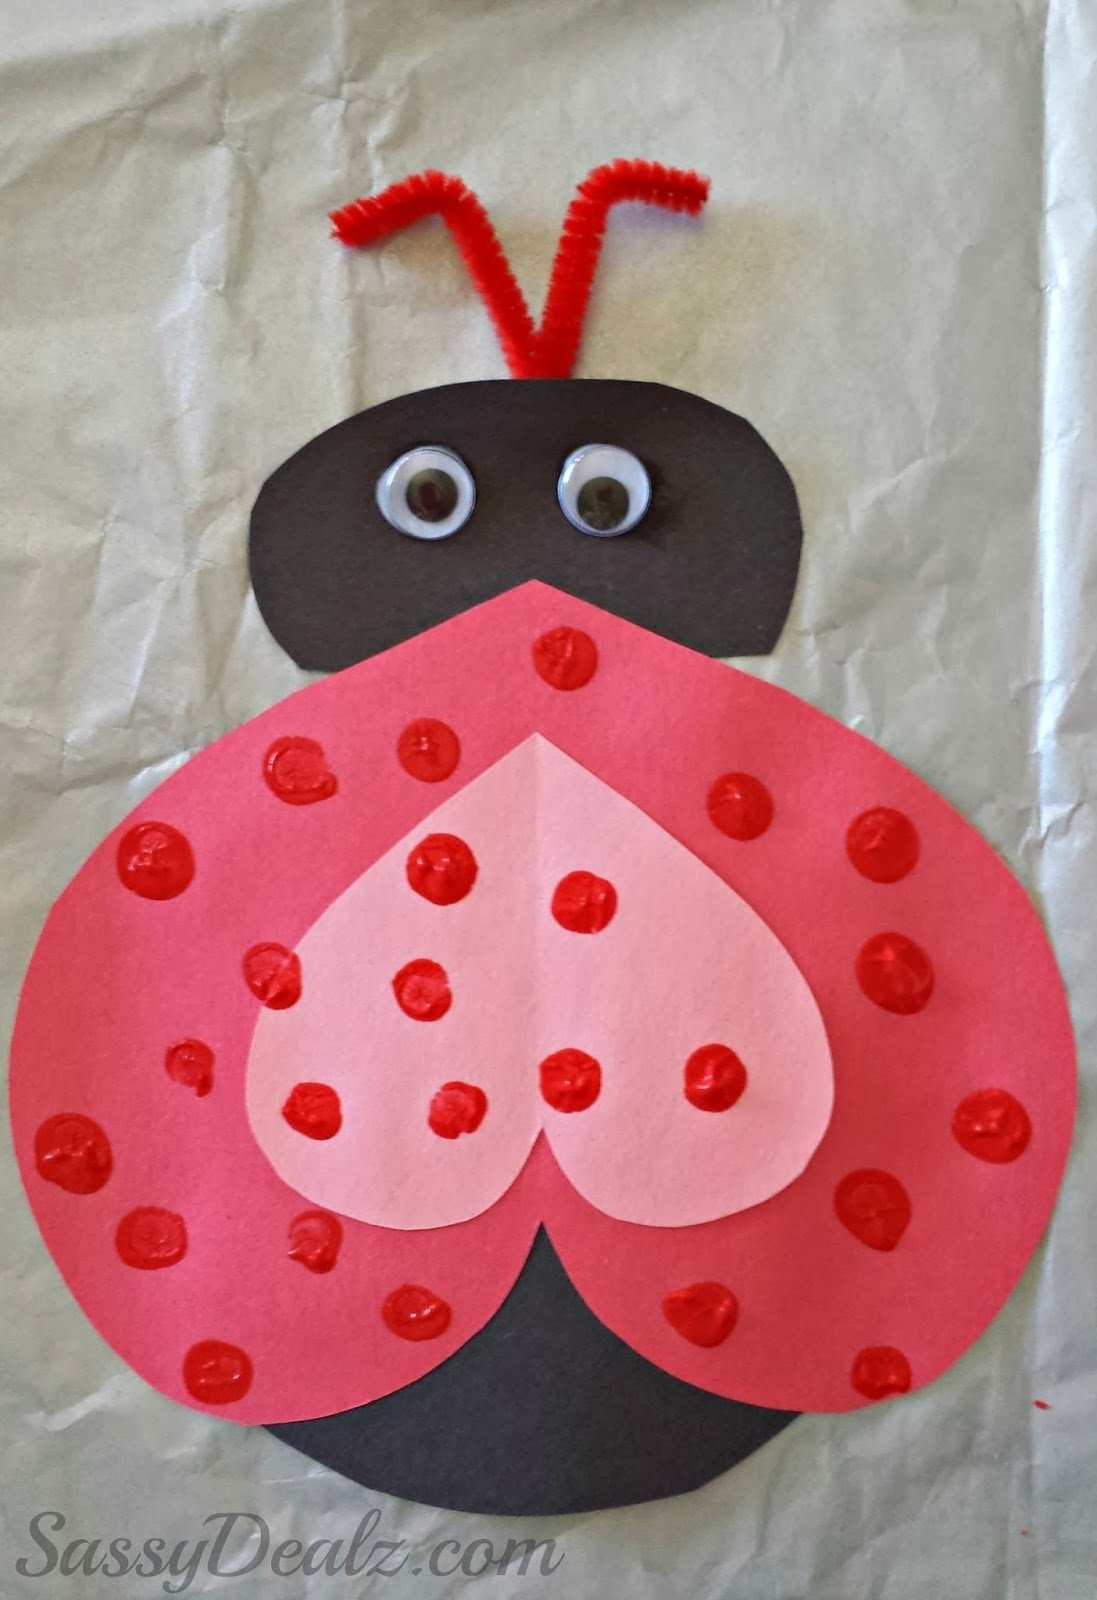 10 Fashionable Valentines Day Craft Ideas For Kids heart ladybug valentines day craft for kids crafty morning 2020